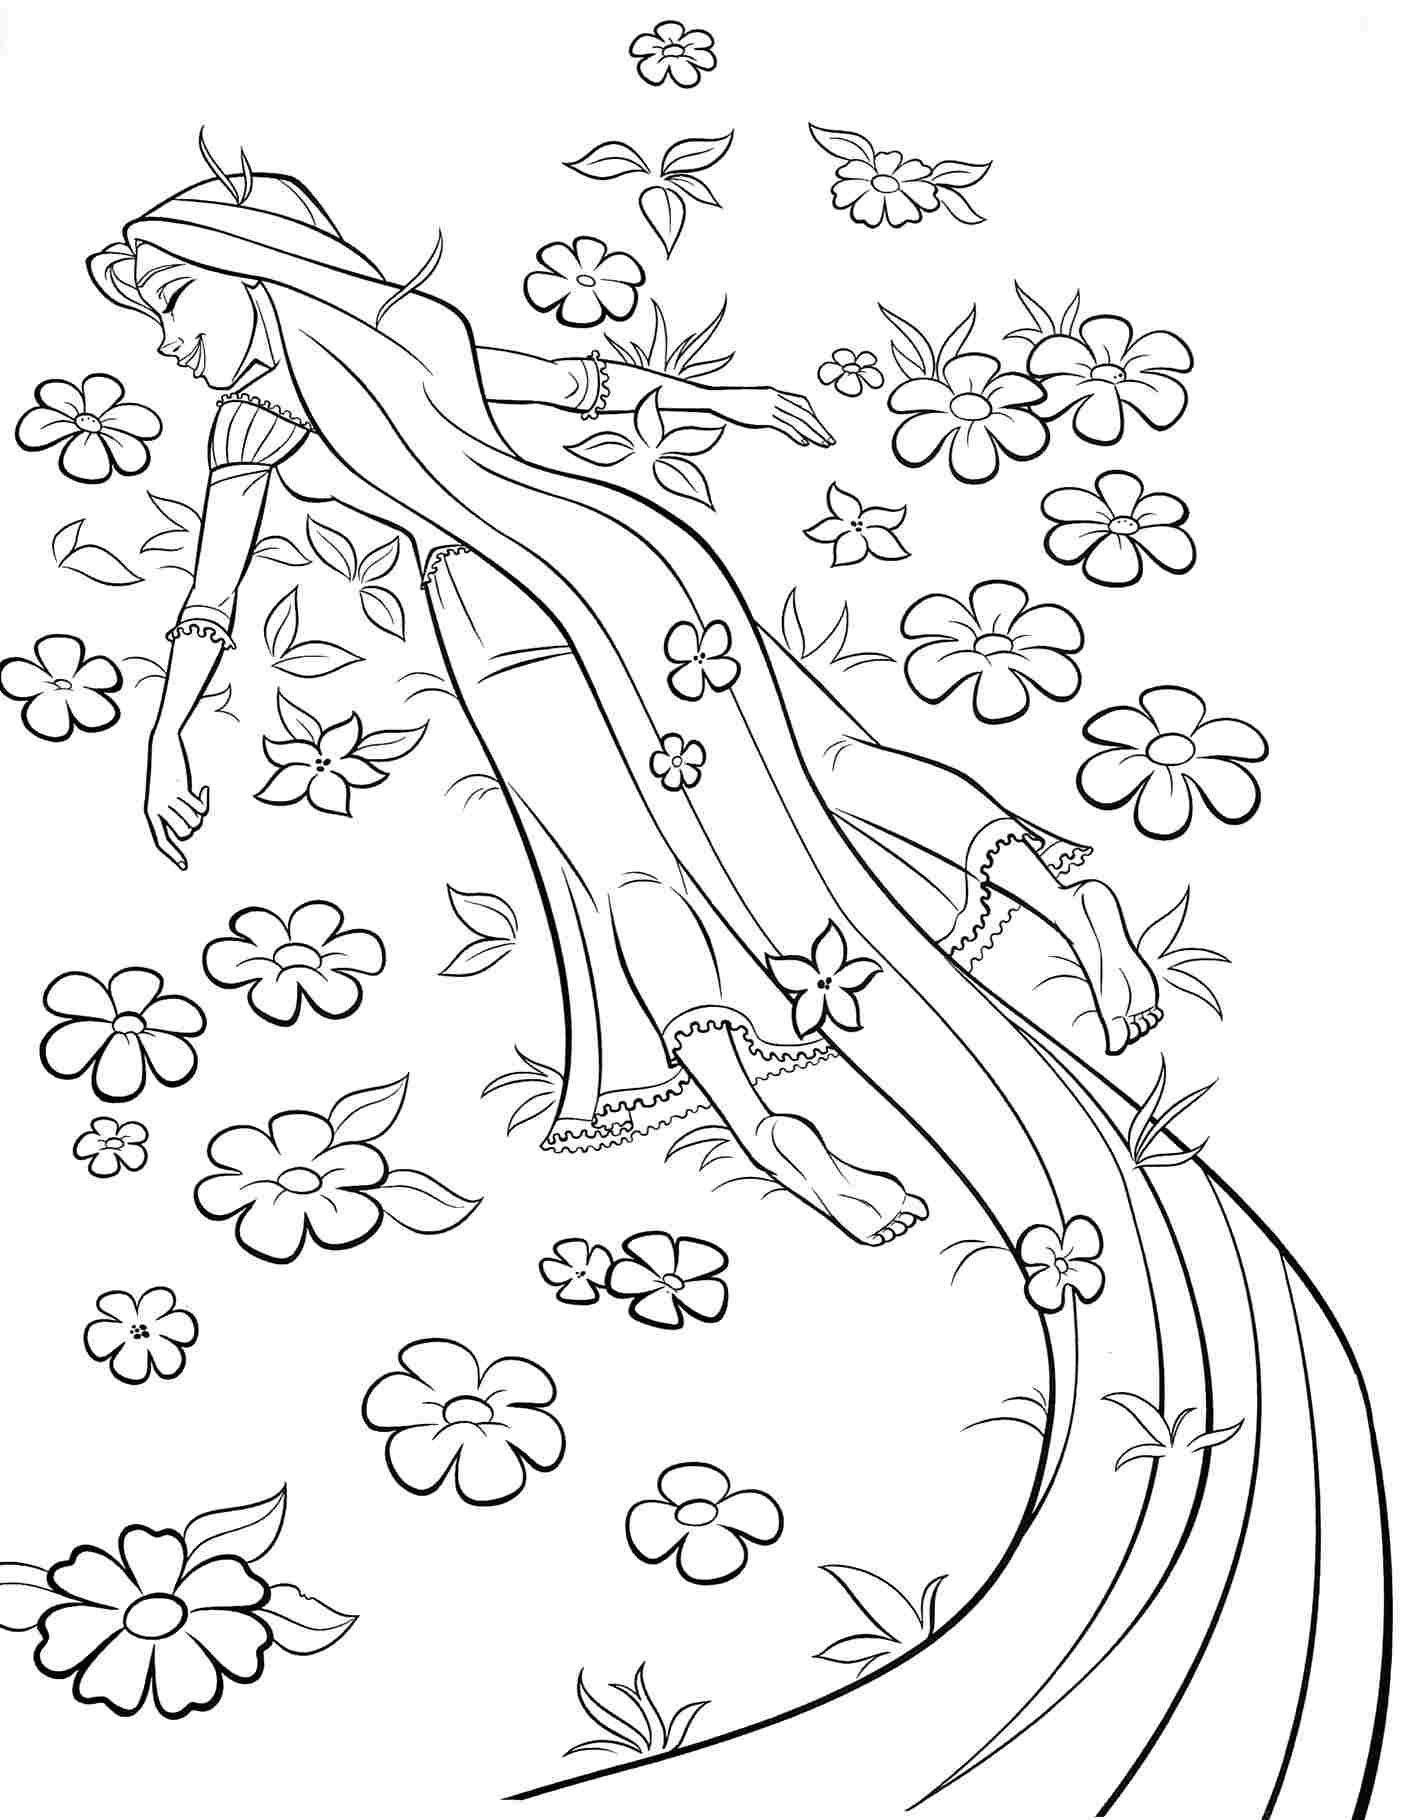 Rapunzel Spends His Days In The Garden Coloring Pages